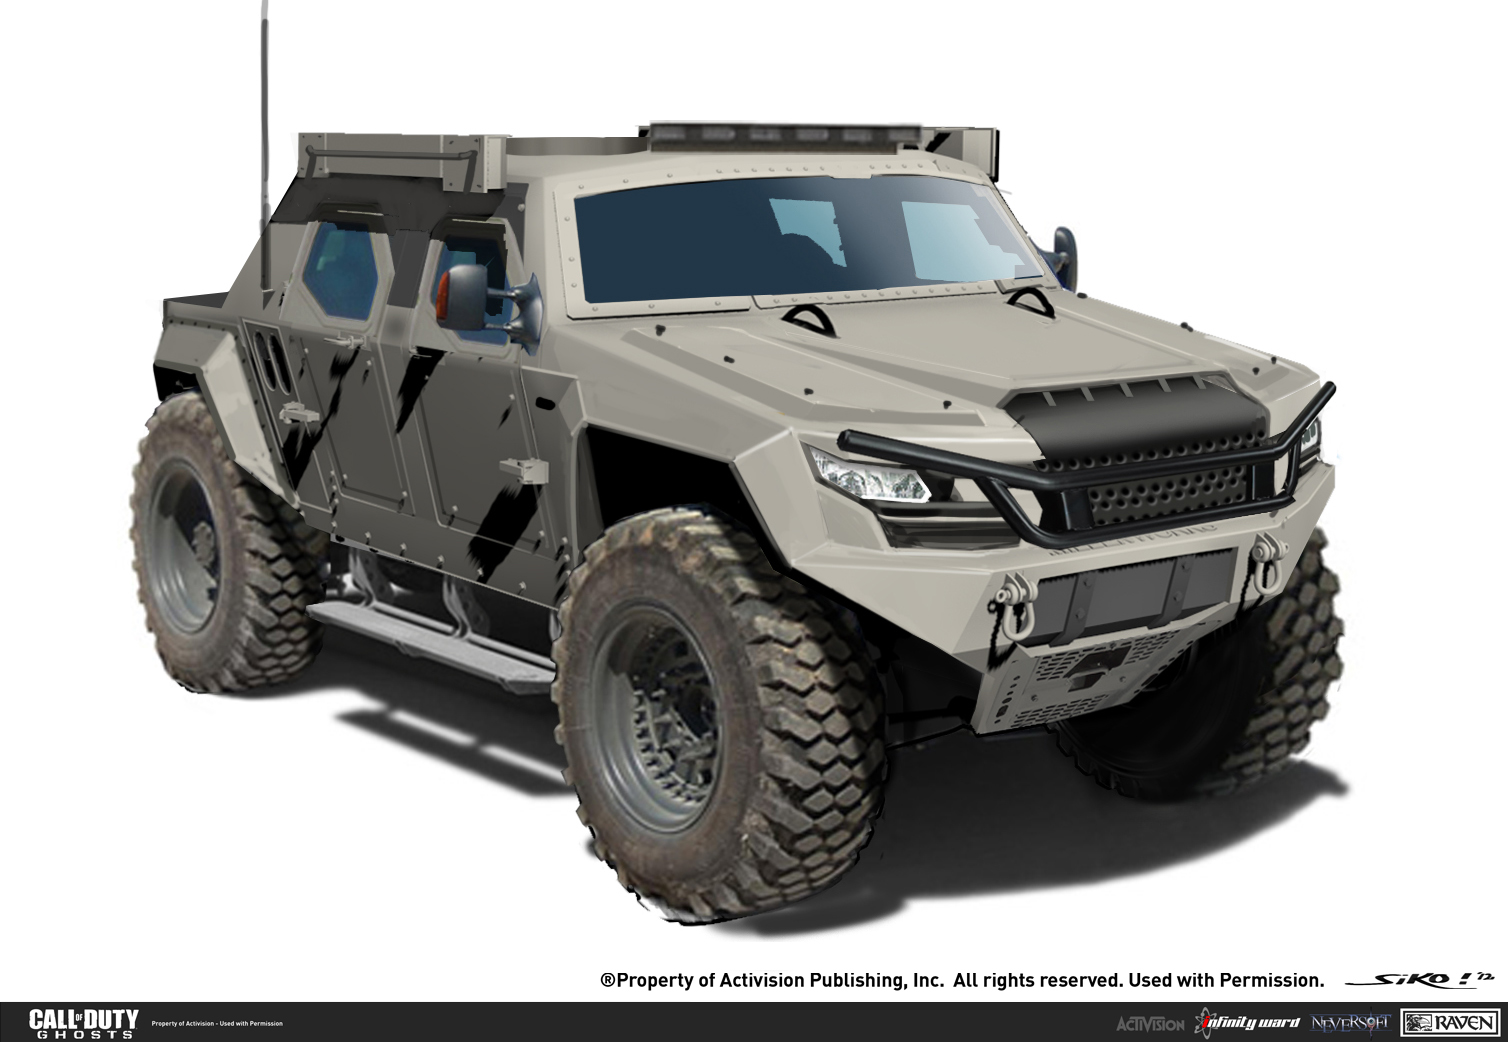 sko_06-01-12_iw6_rourke_vehicle